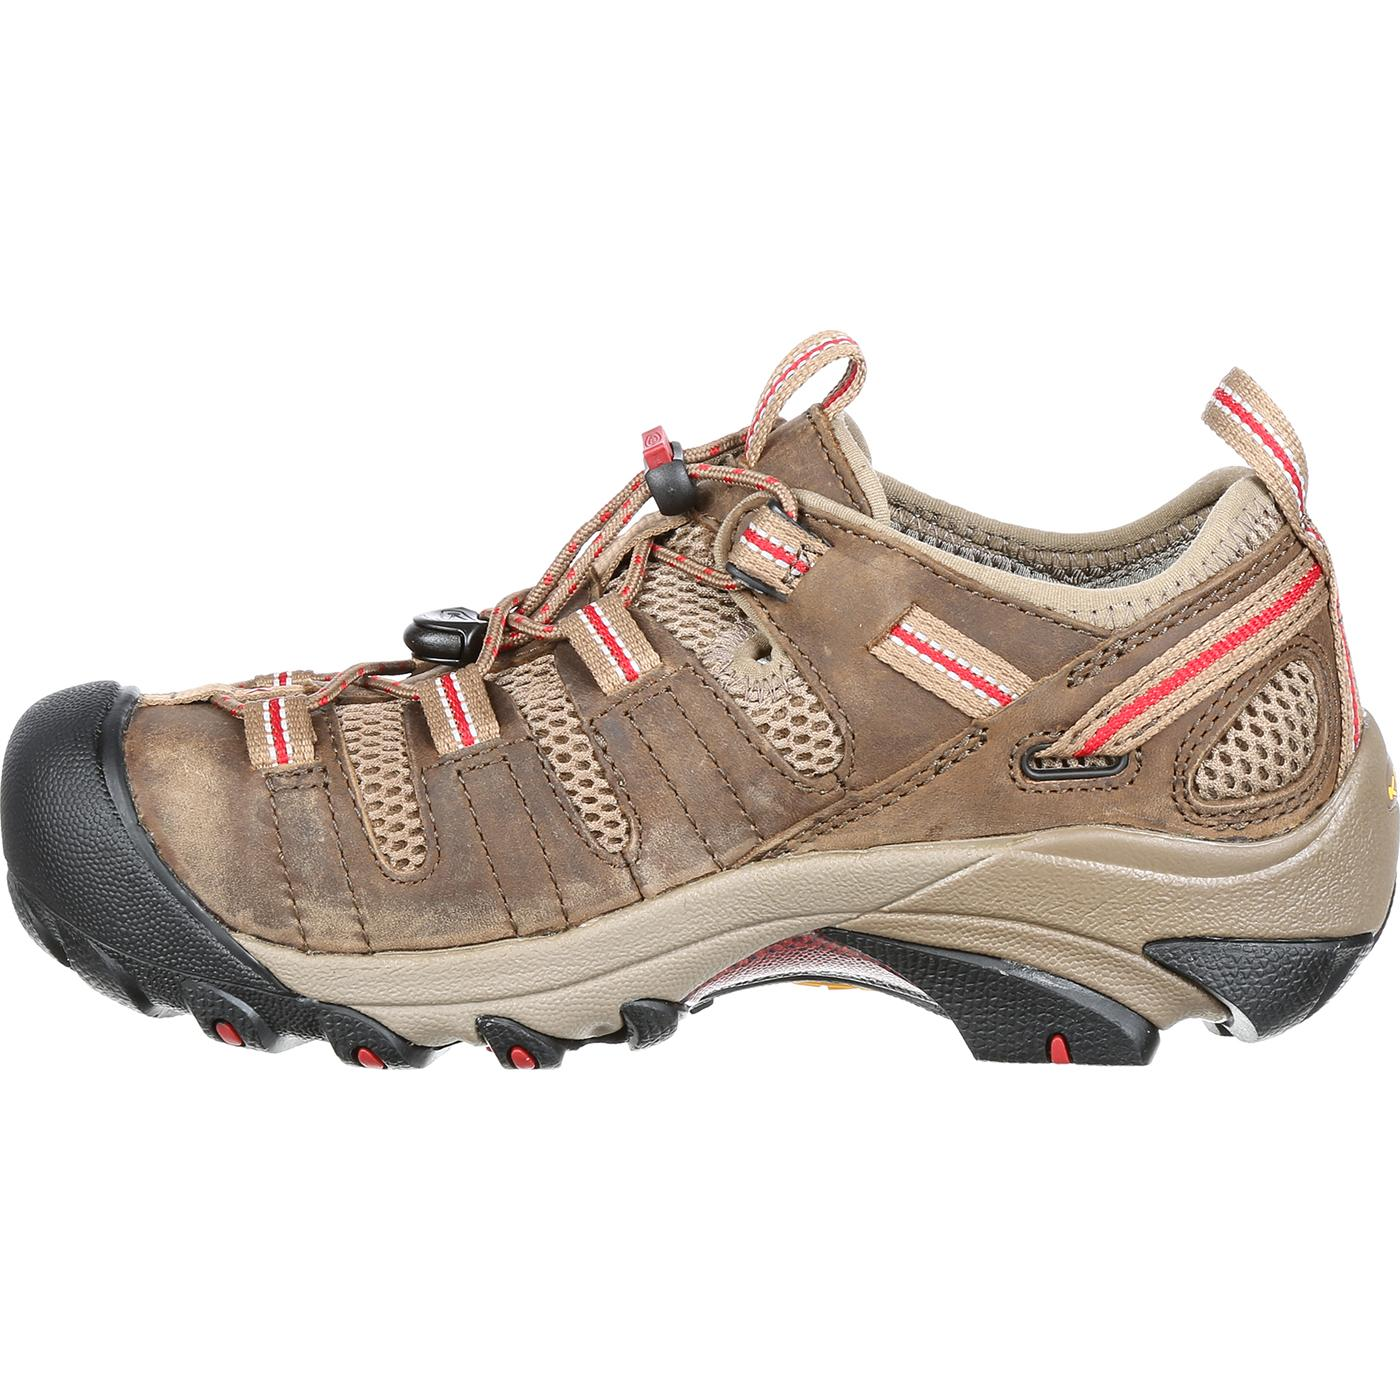 Keen Womens Shoes Size